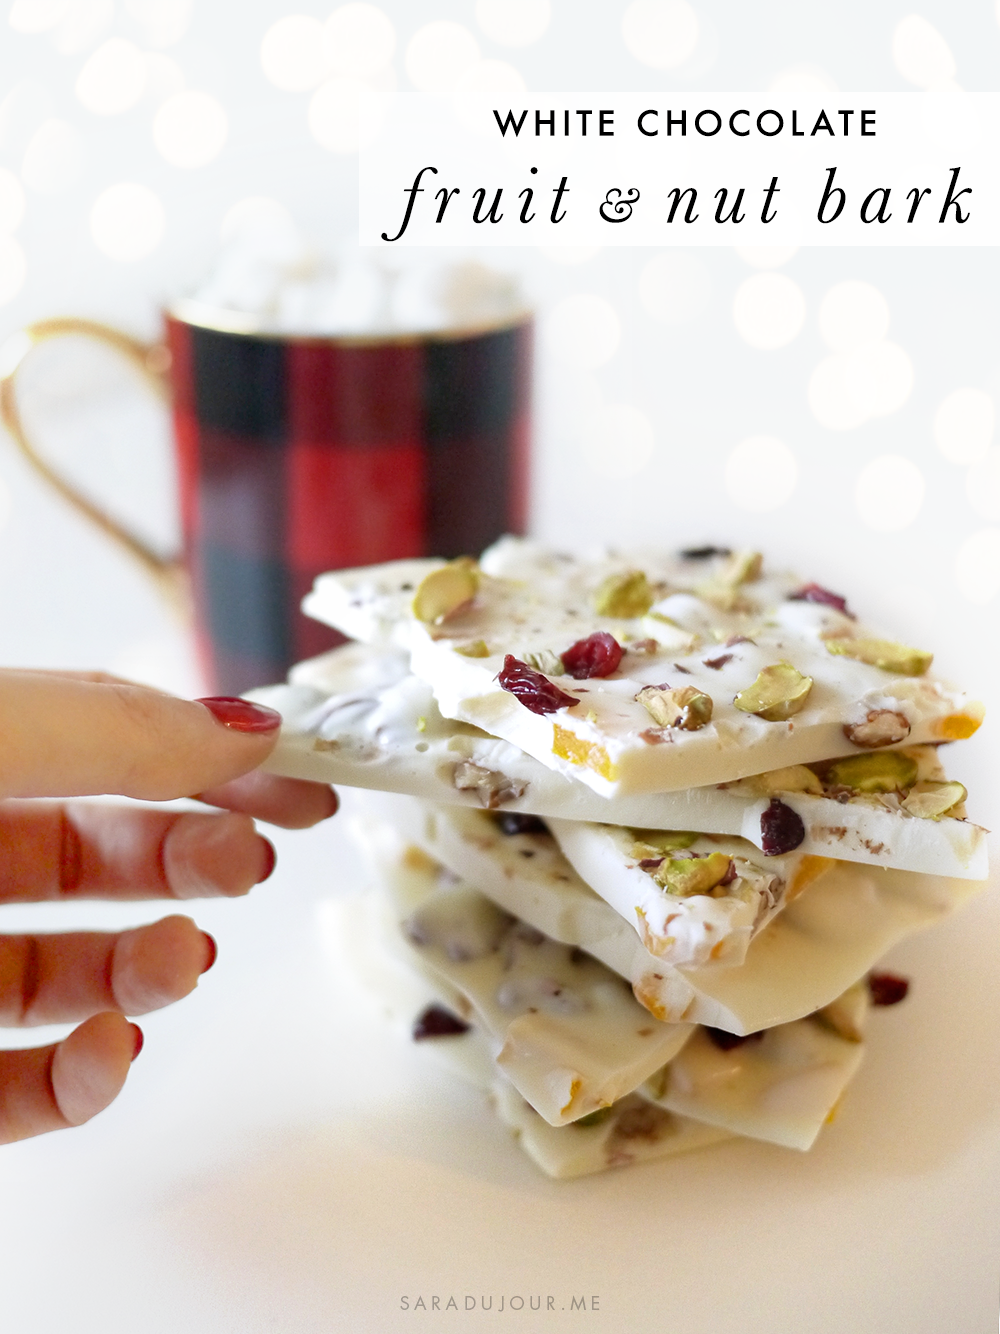 White Chocolate Fruit and Nut Bark Recipe | Sara du Jour